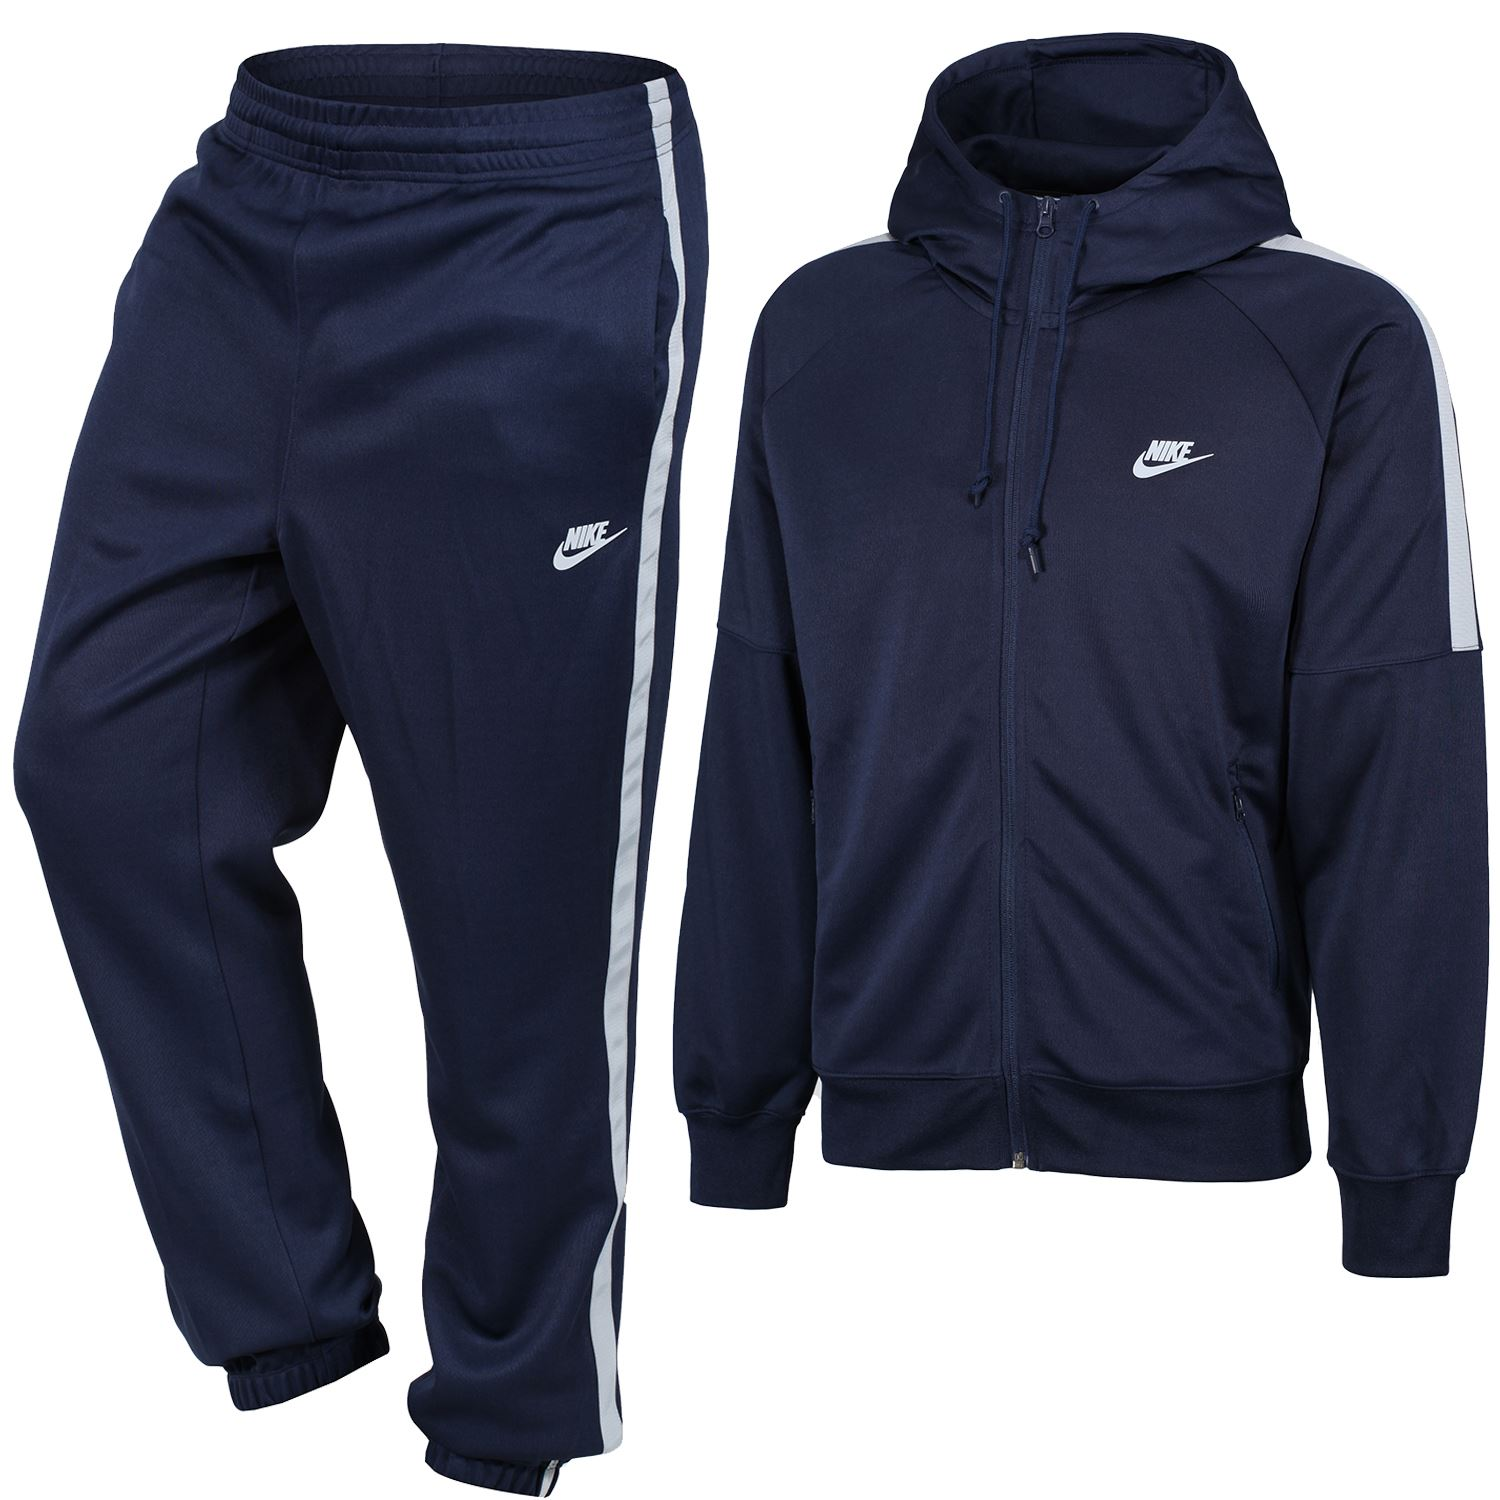 50a9c7f2a191 NIKE MEN S TRACKSUITS AIR SWOOSH HYBRID TRIBUTE BLACK NAVY GREY ...